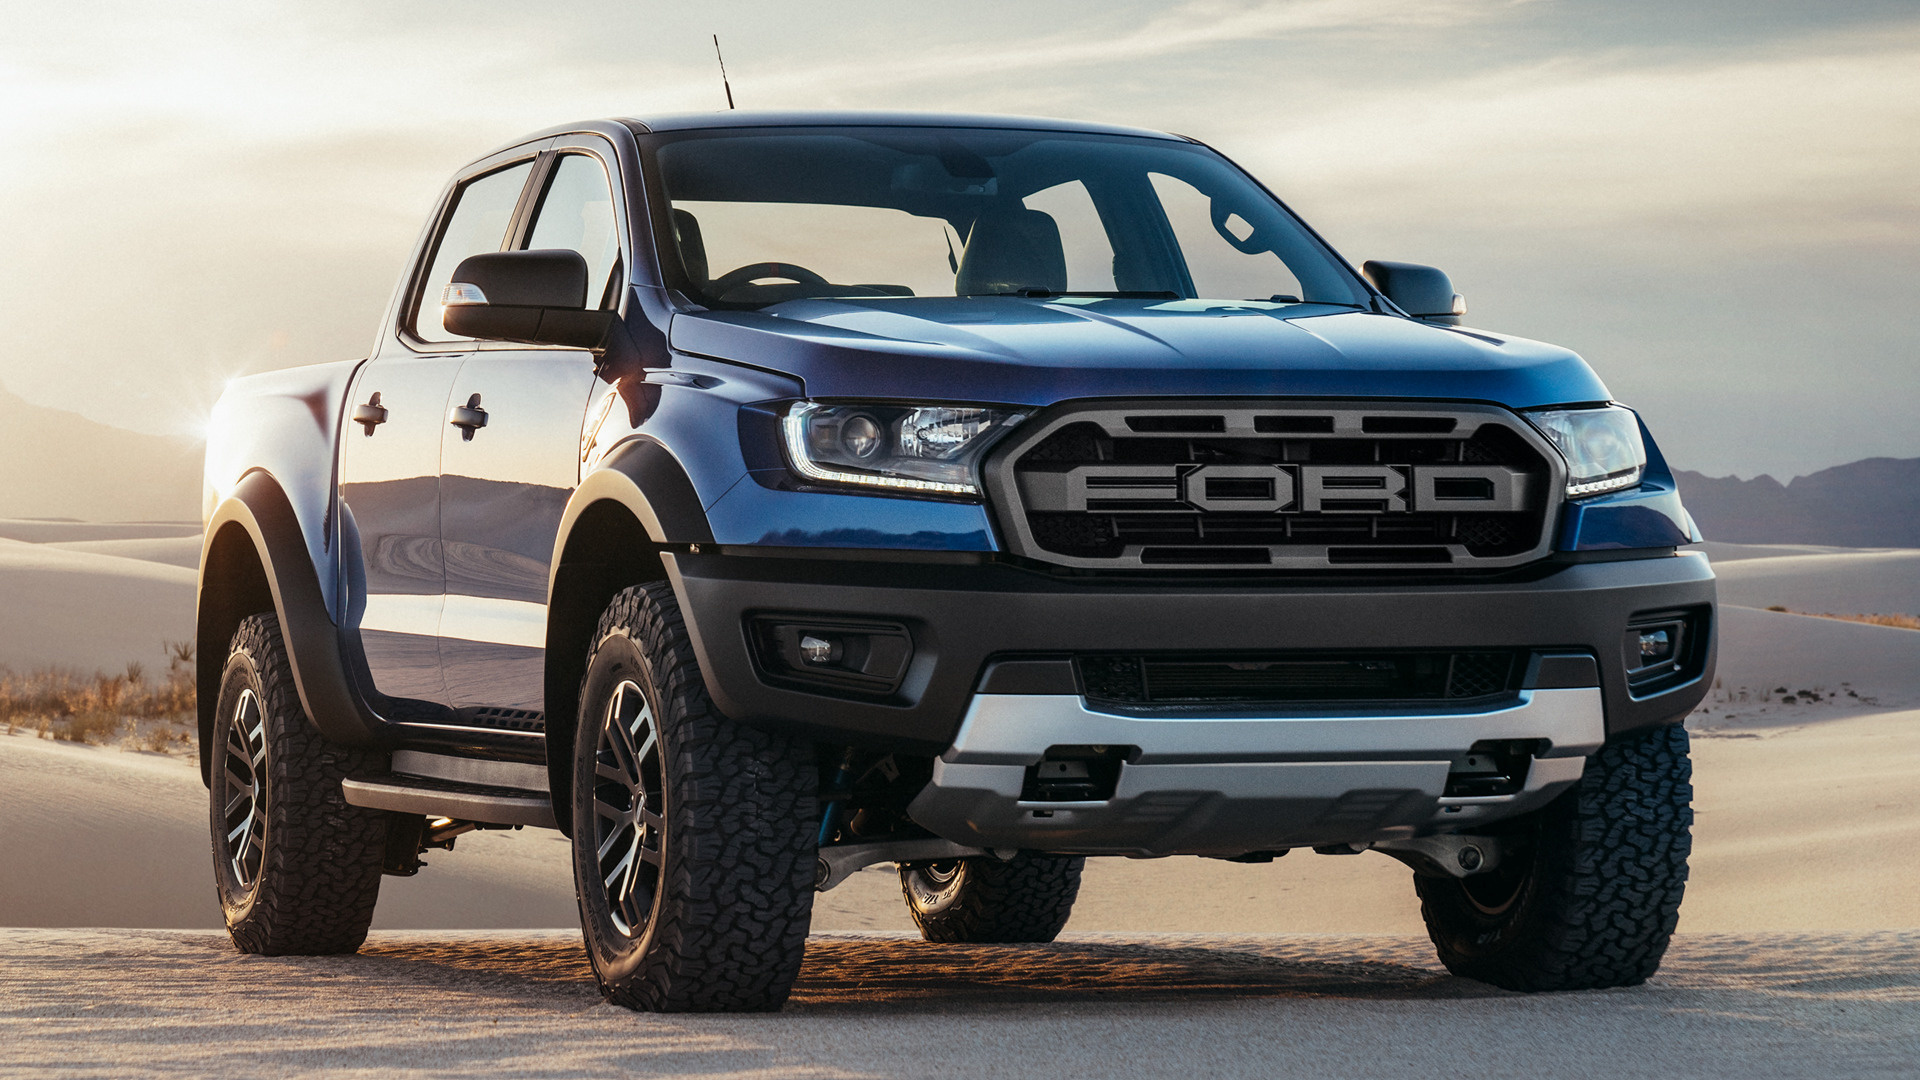 1920x1080 - Ford Ranger Wallpapers 19